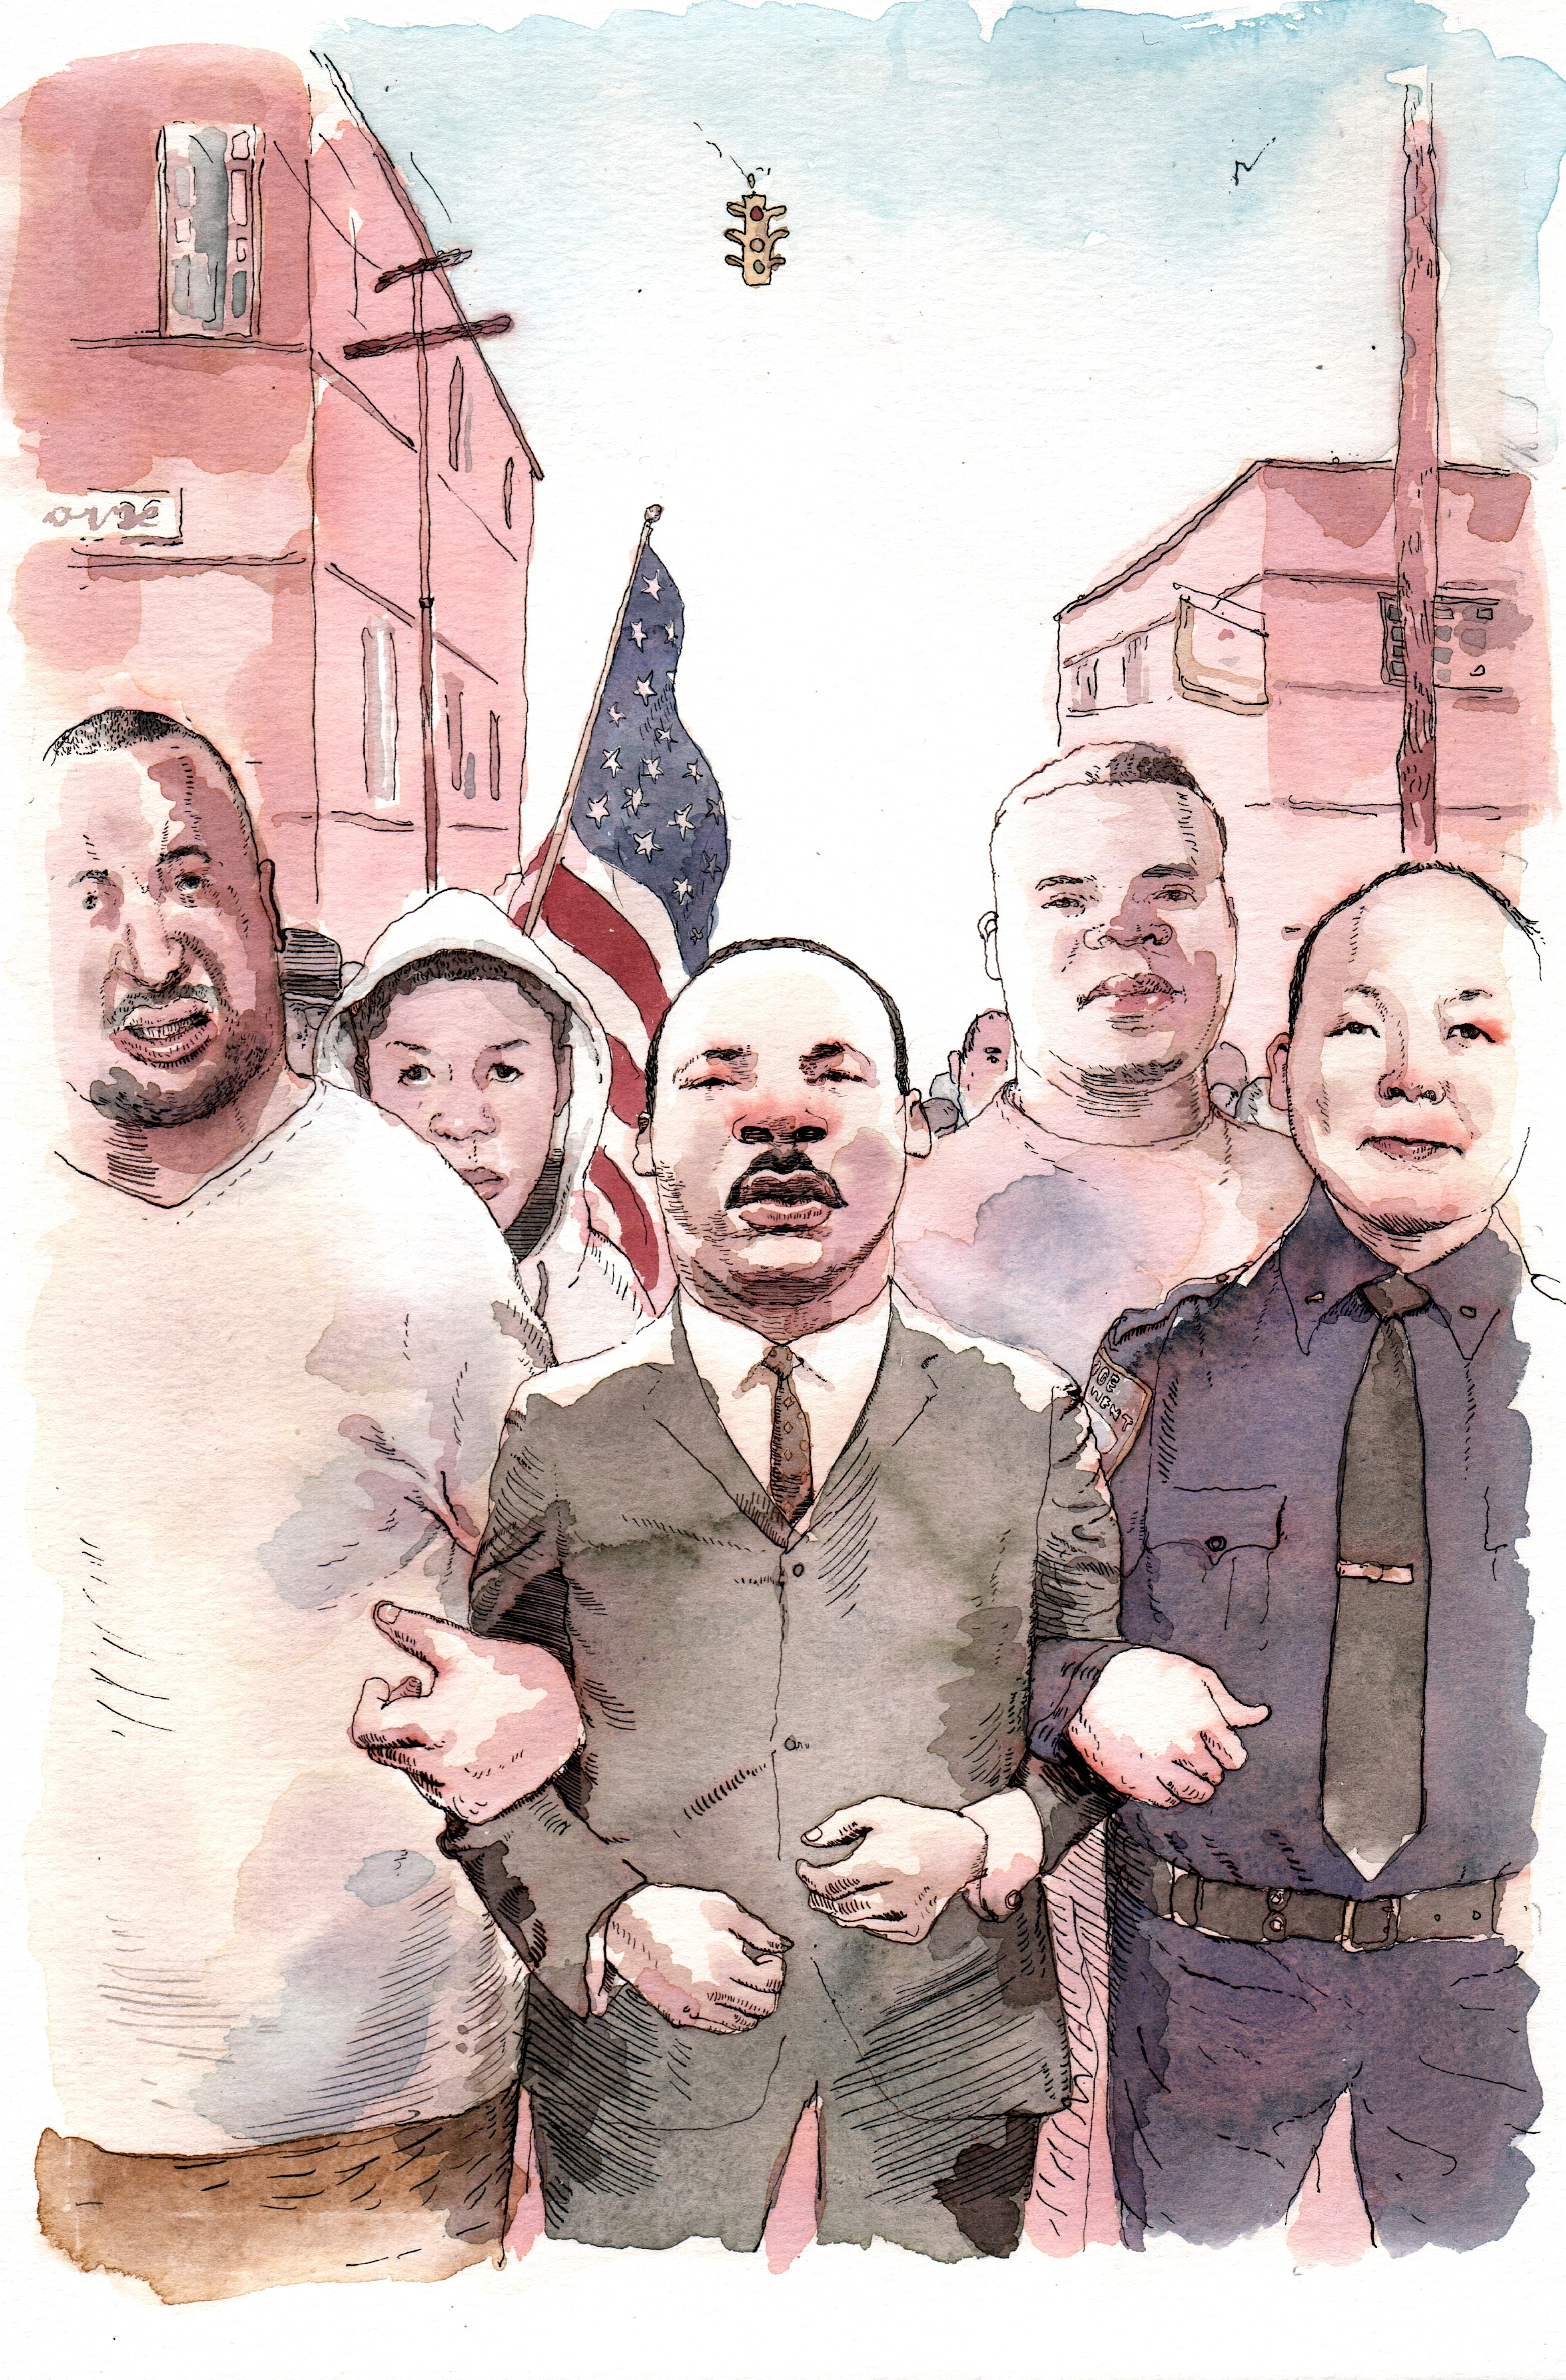 MLK by Barry Blitt